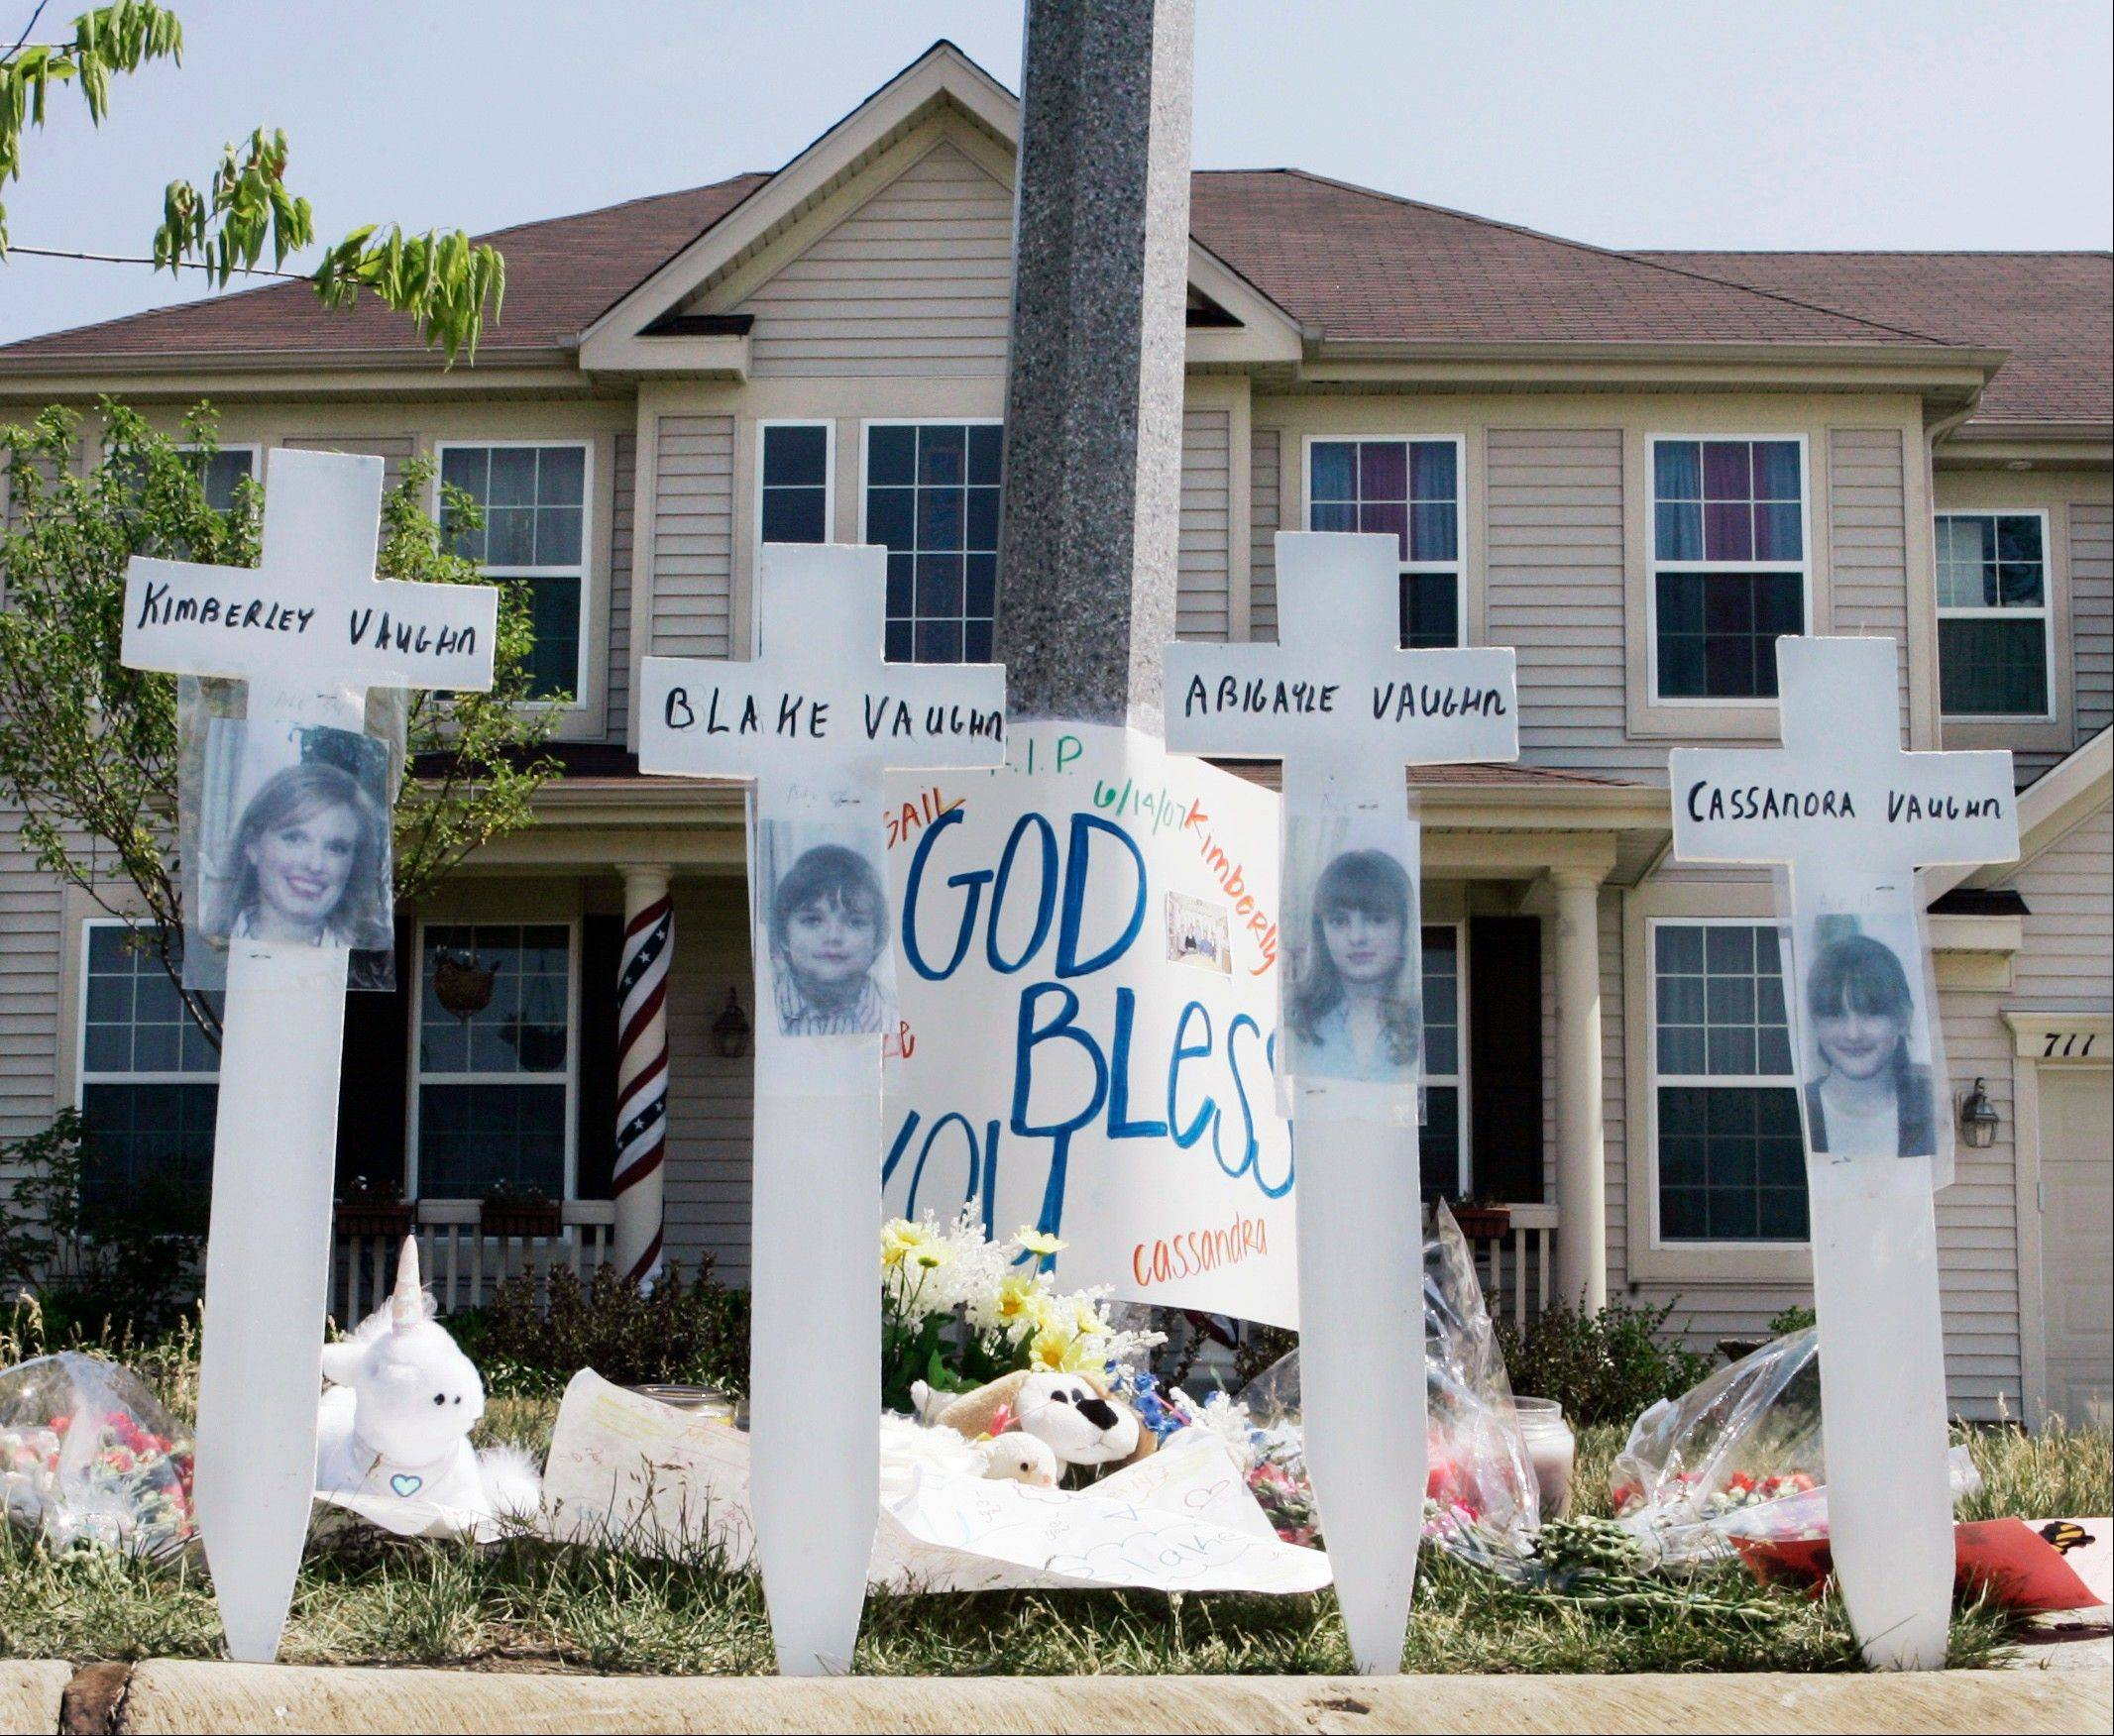 A makeshift memorial to Kimberly Vaughn and her three children, Abigayle, 12, Cassandra, 11, and Blake, 8, was erected outside their home in Oswego in 2007.